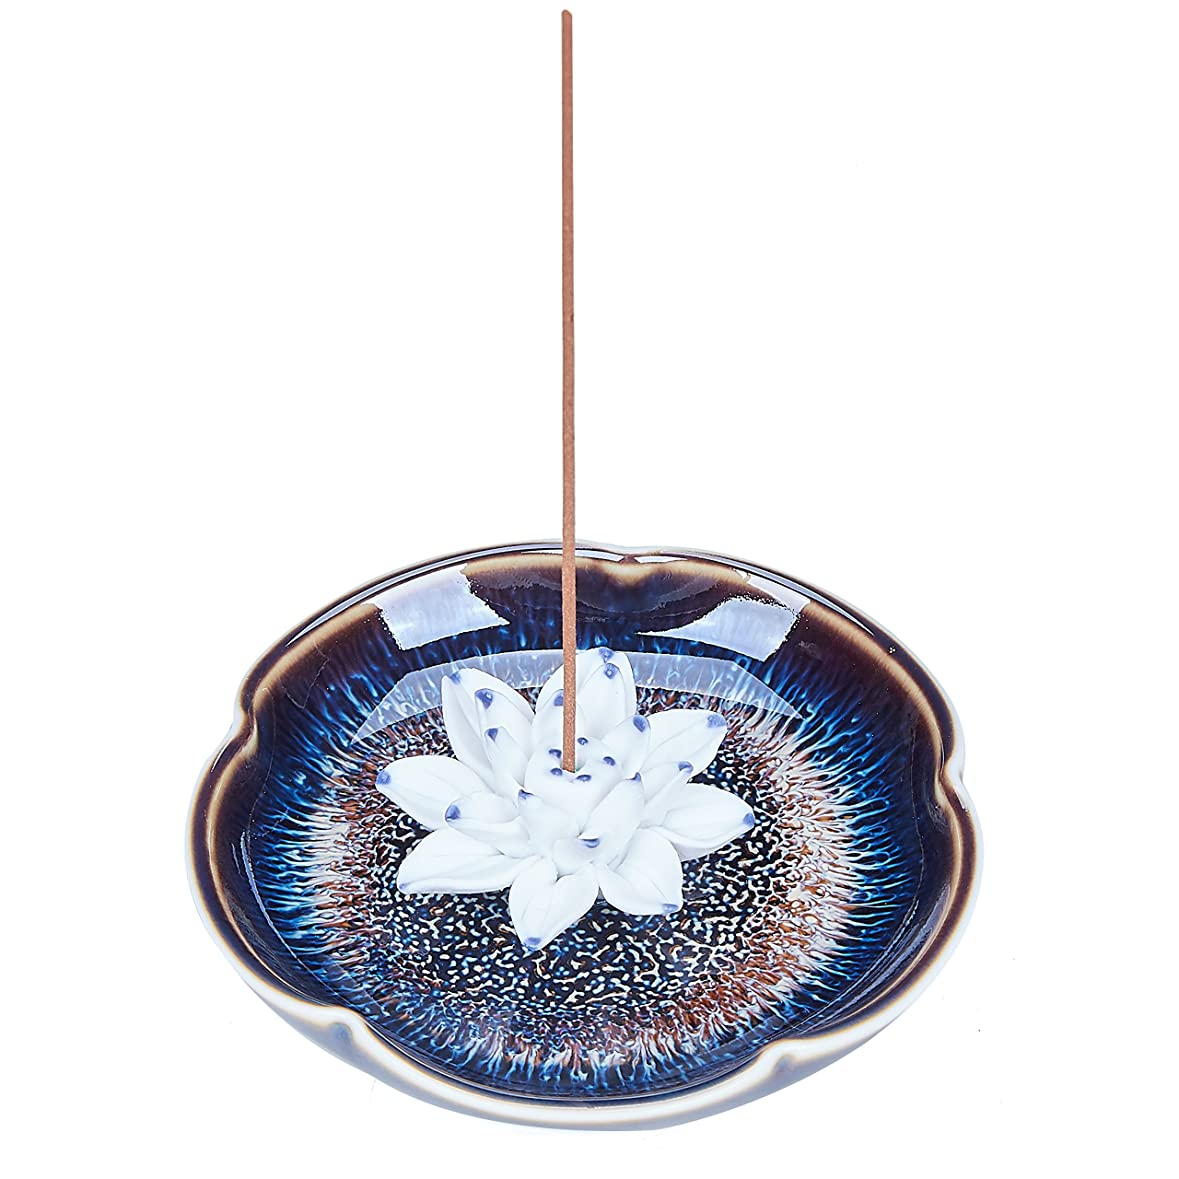 用心深いオーバーランアクセルUOON Incense Stick Burner Holder - Handmade Ceramic Lotus Flower Incense Burner Bowl Ash Catcher Tray Plate (Lake Blue)